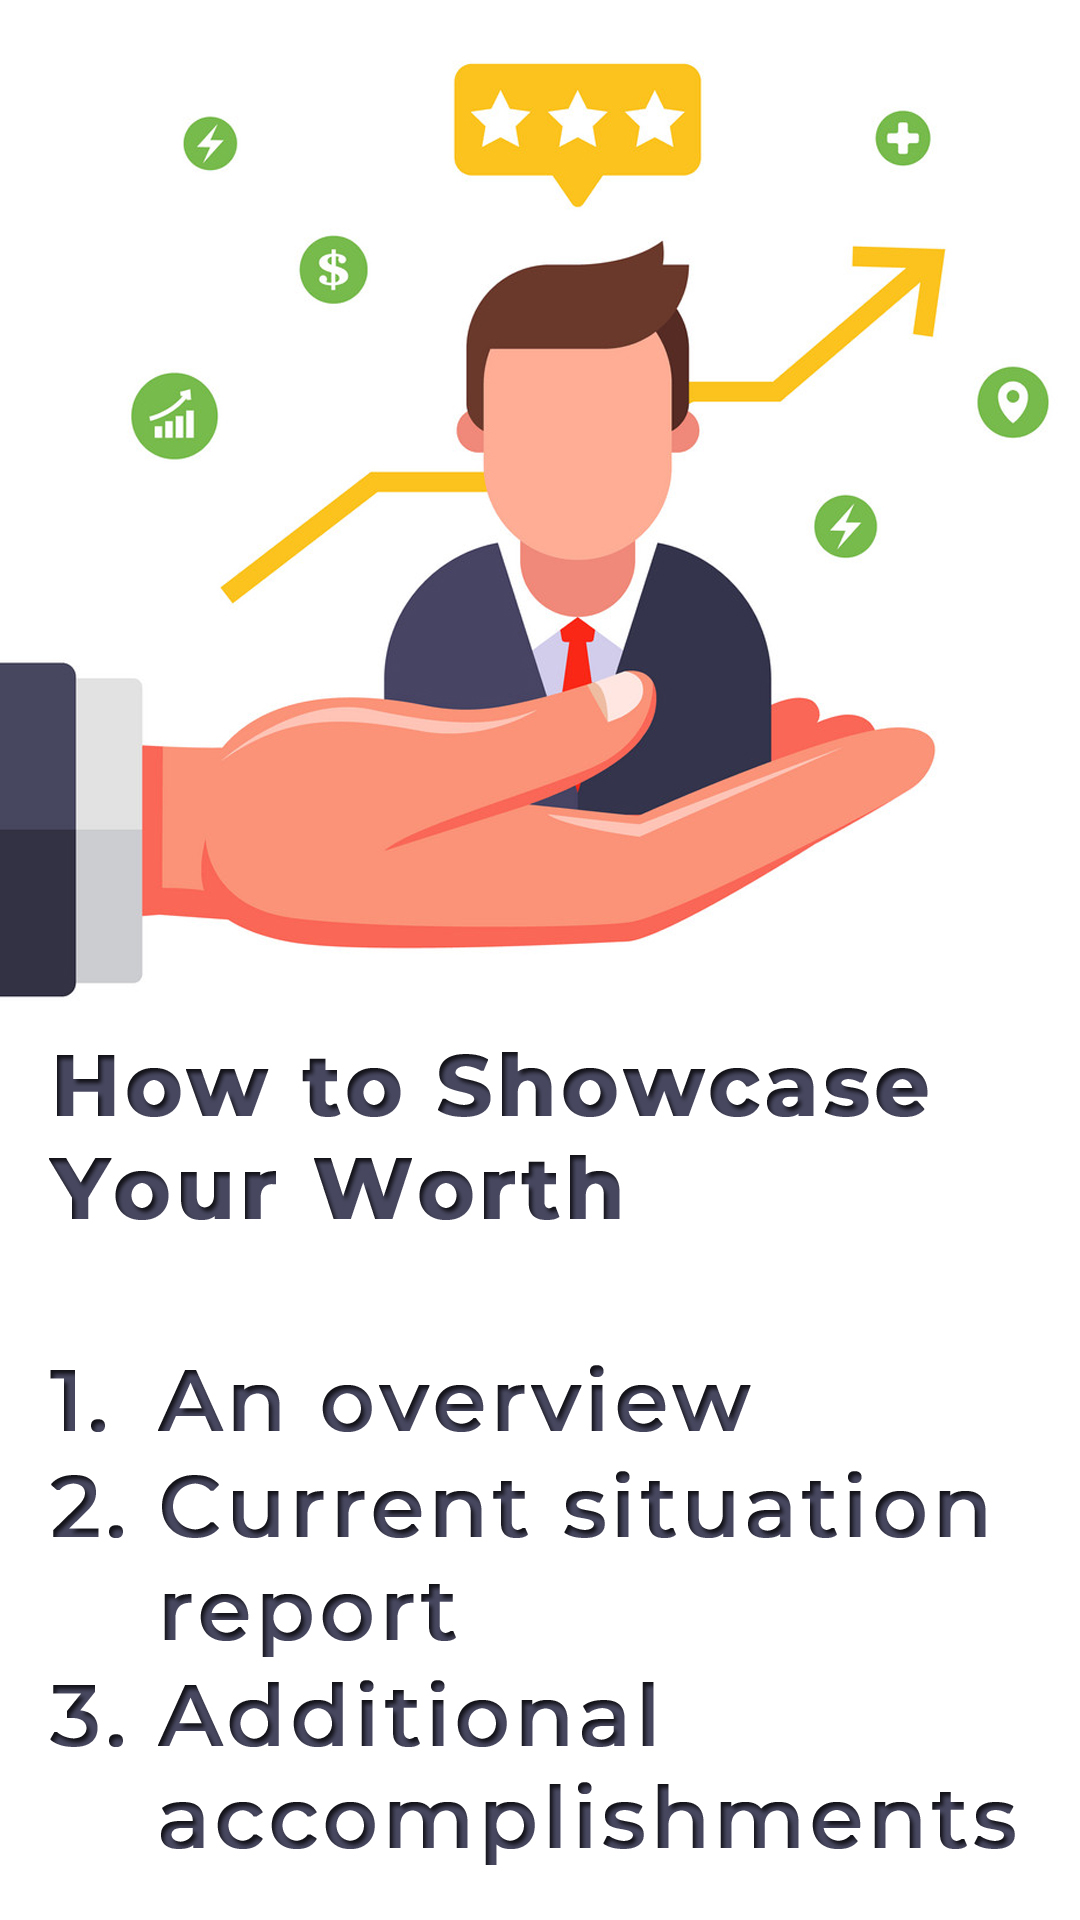 How to Showcase Your Worth